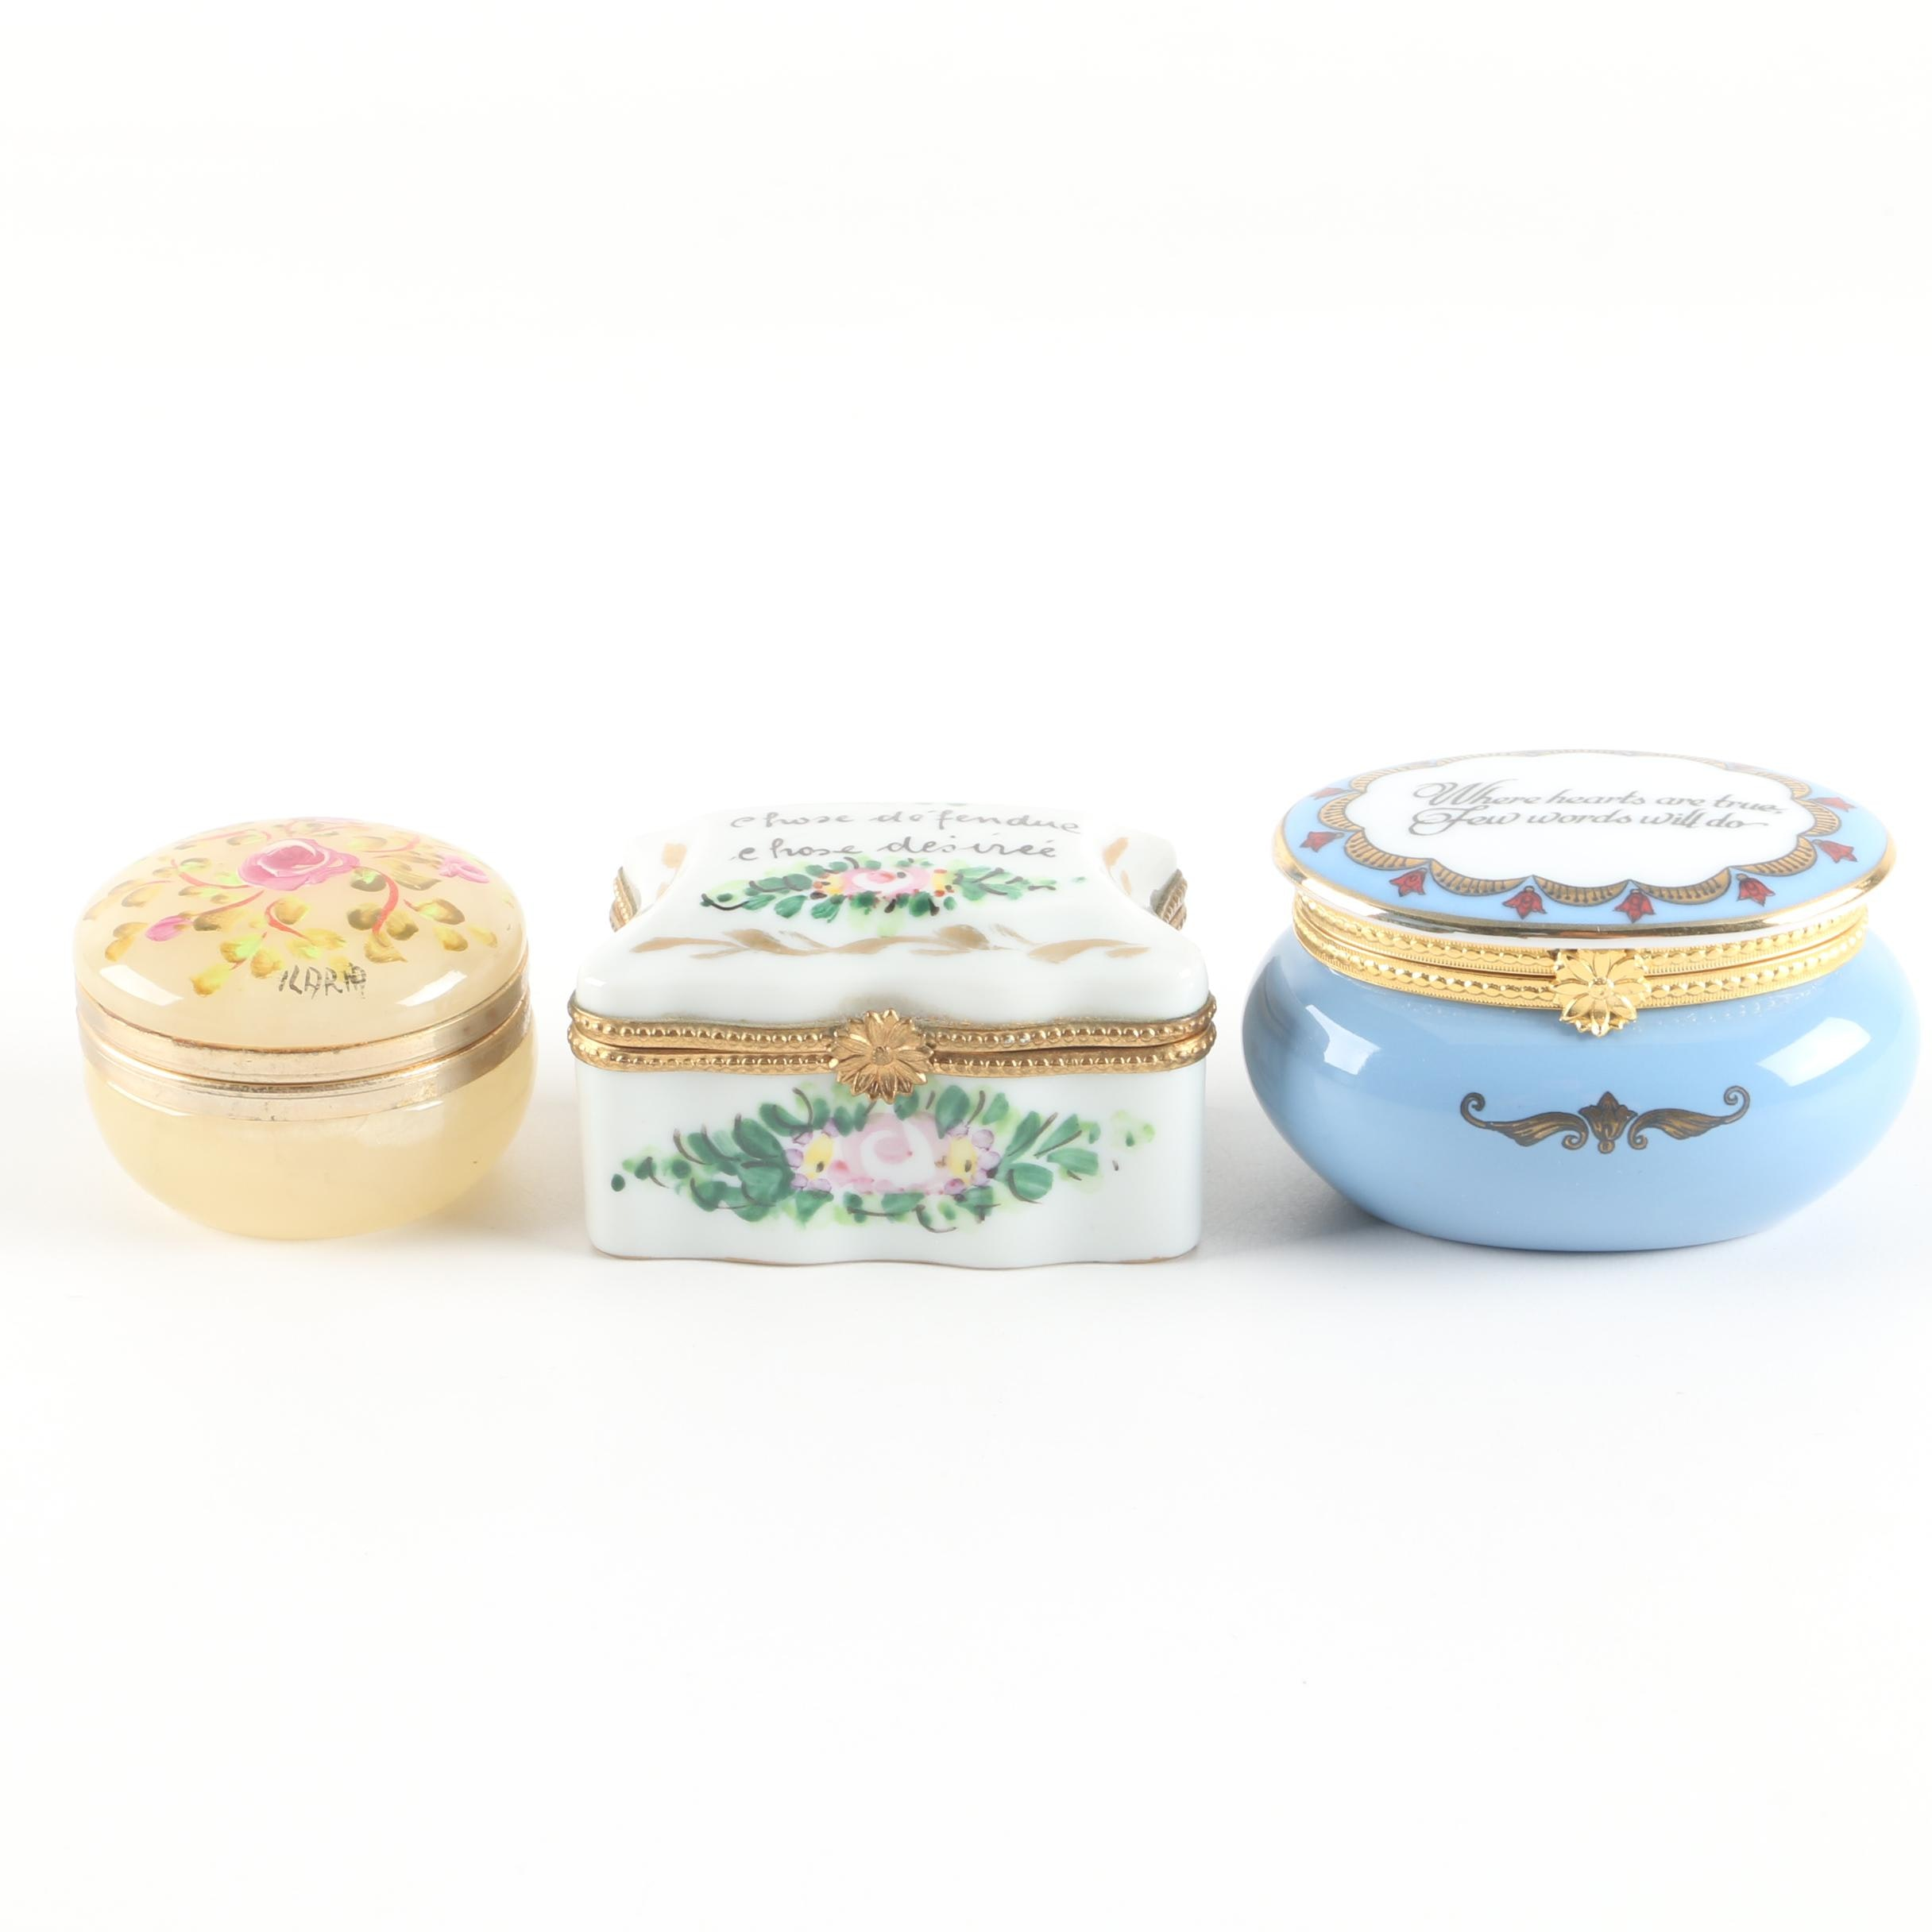 Porcelain and Glass Trinket Boxes Featuring Dewman